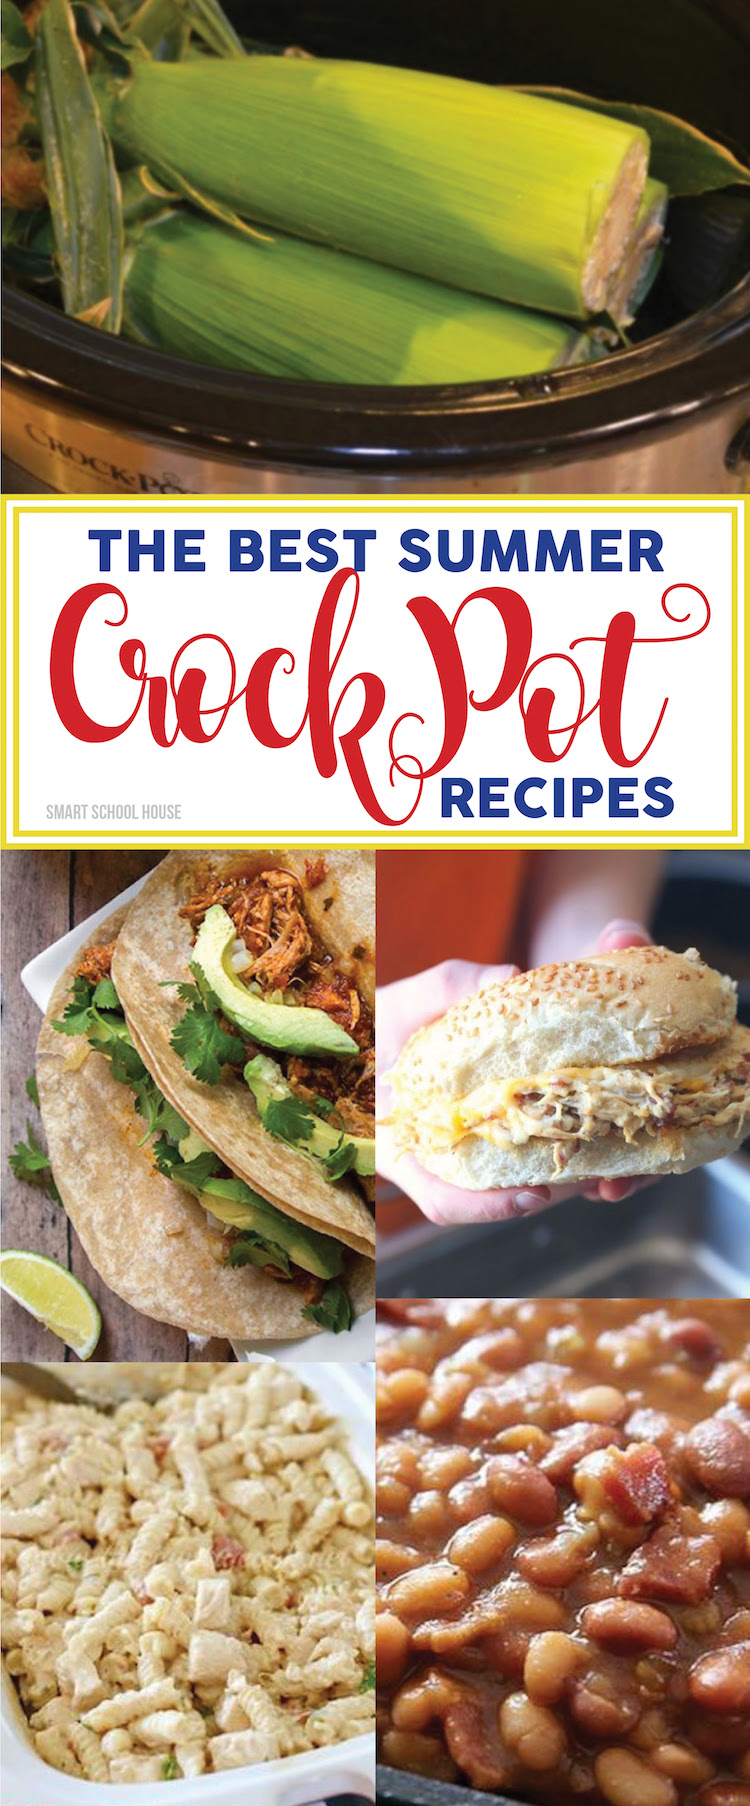 Summer Crock Pot Recipes - Smart School House